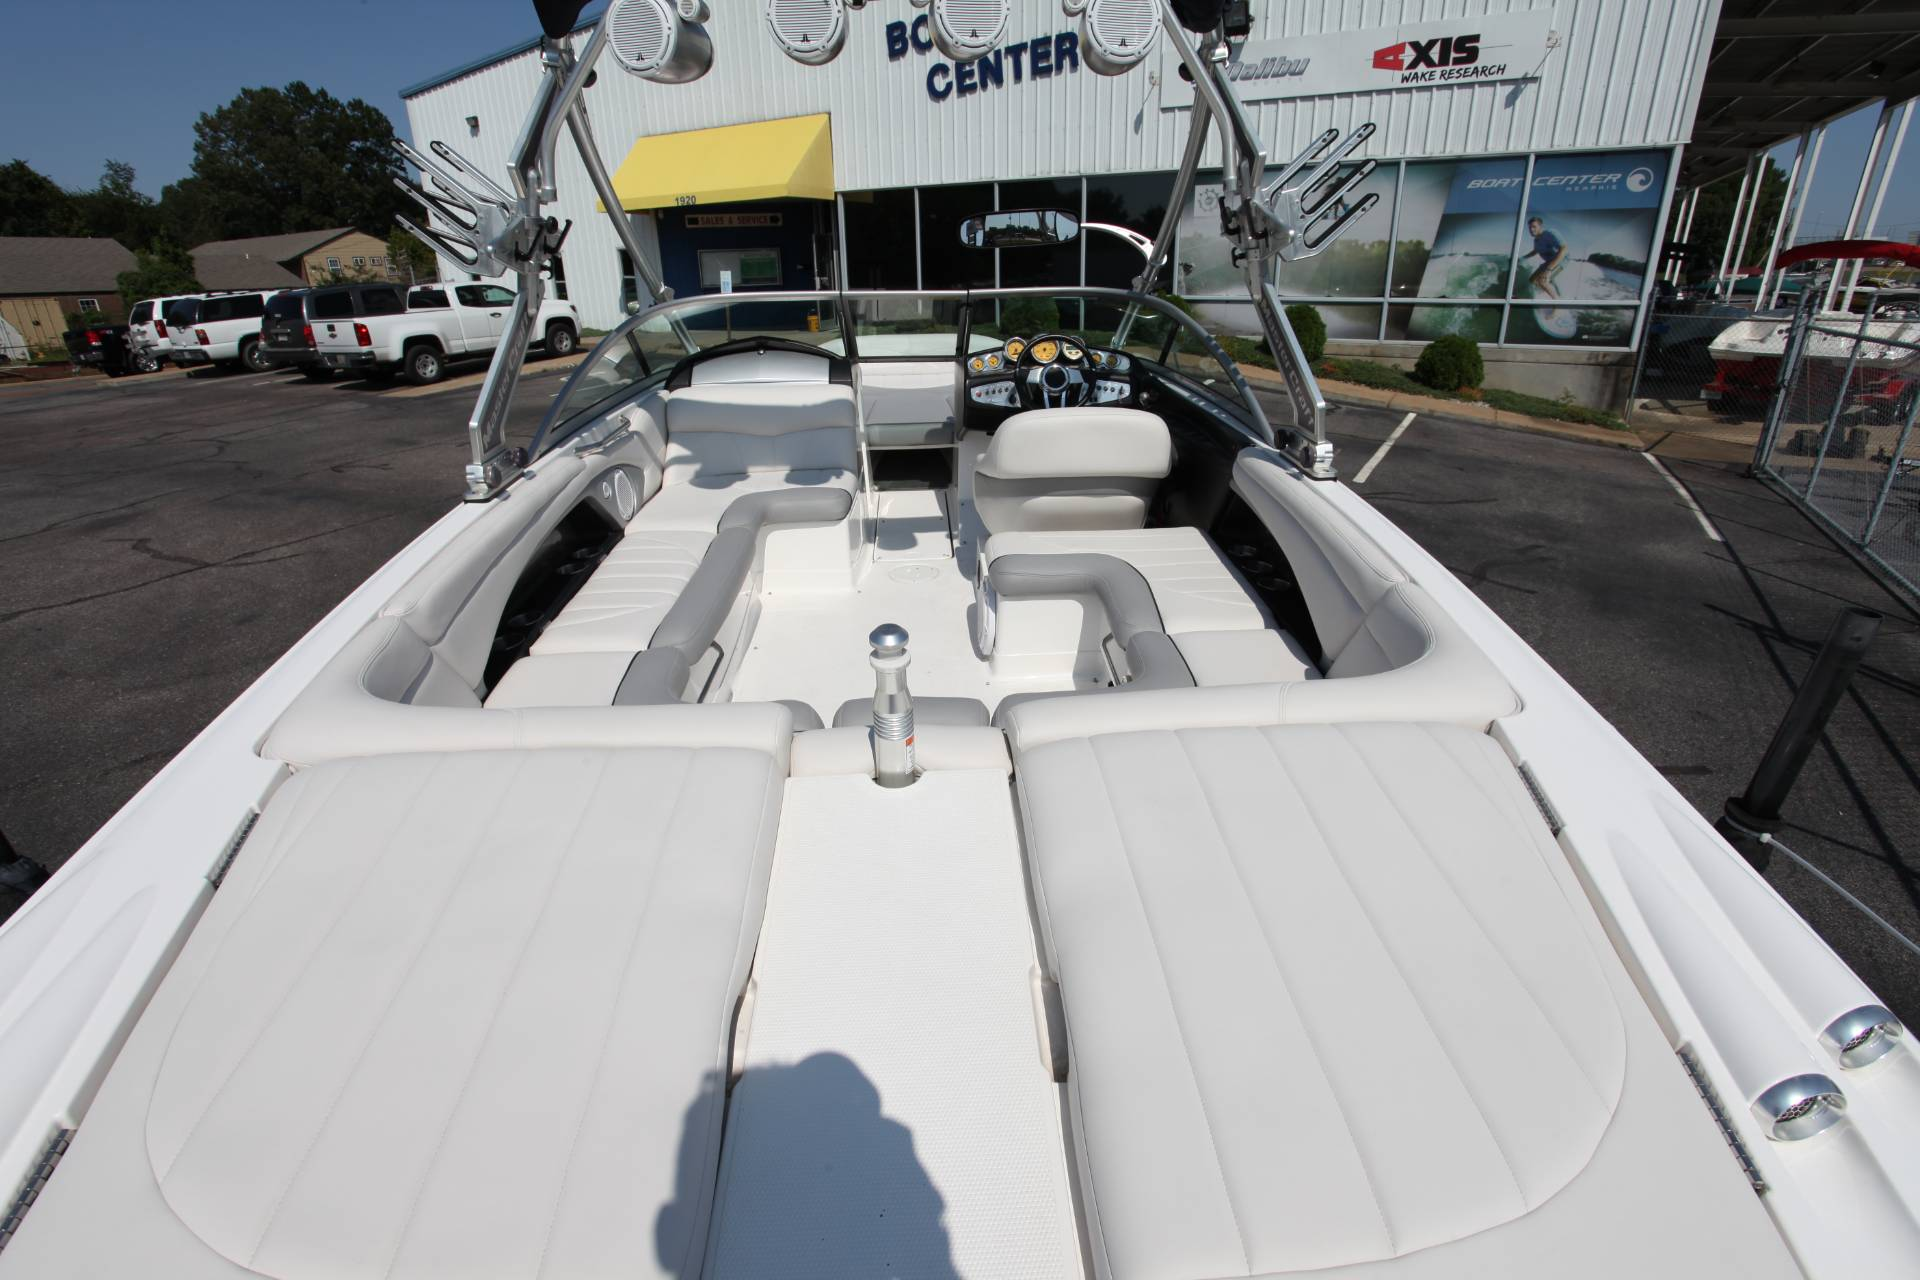 2005 Mastercraft X-45 in Memphis, Tennessee